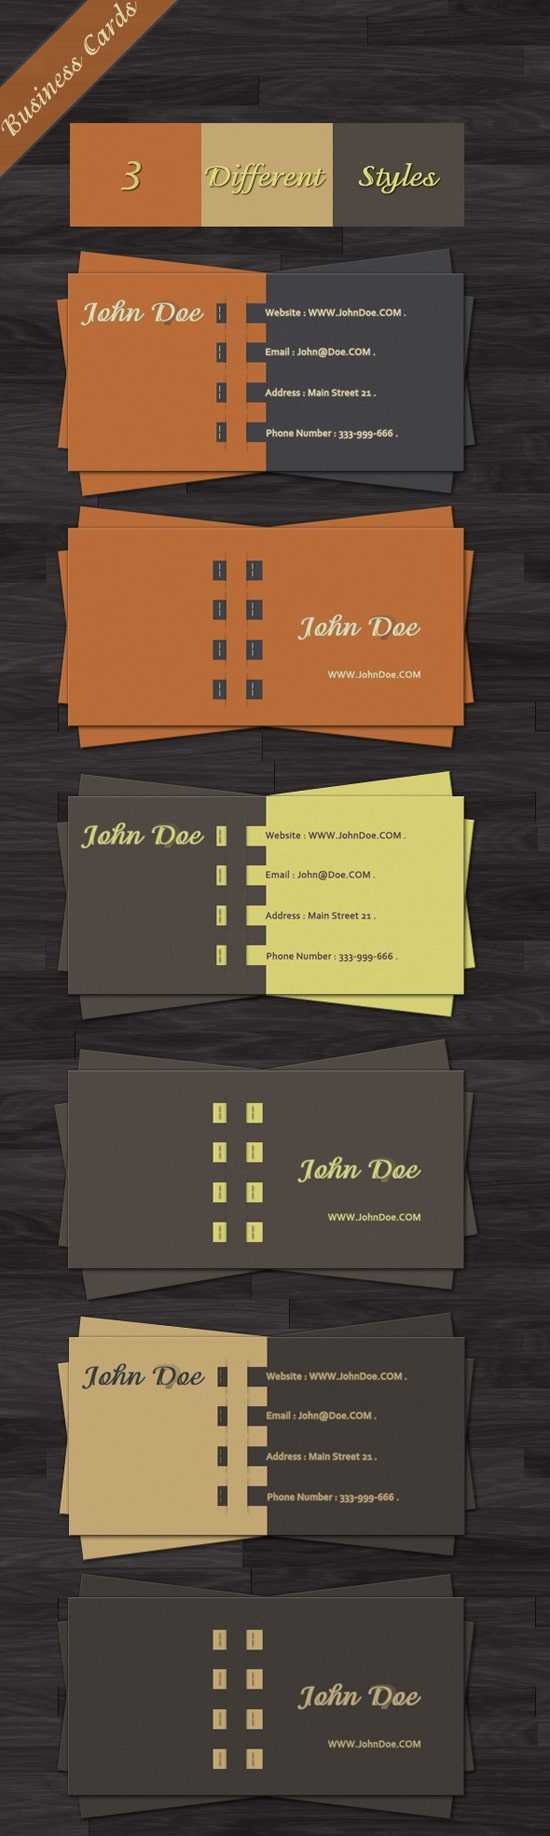 100 Free Business Card Templates - Designrfix for Visiting Card Templates For Photoshop